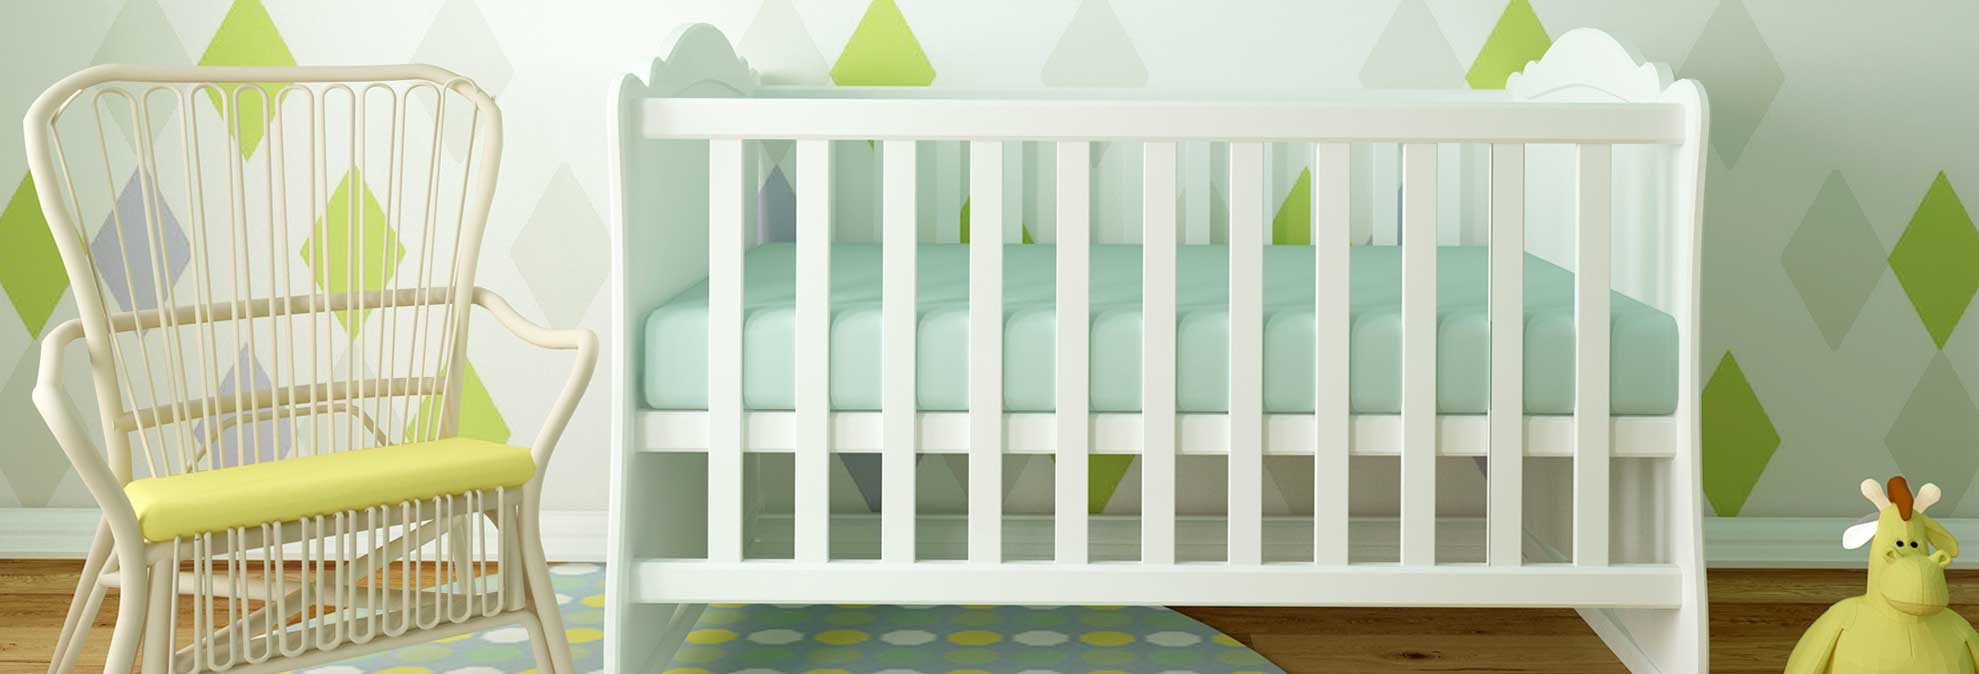 Crib mattress for babies - Crib Mattress For Babies 18